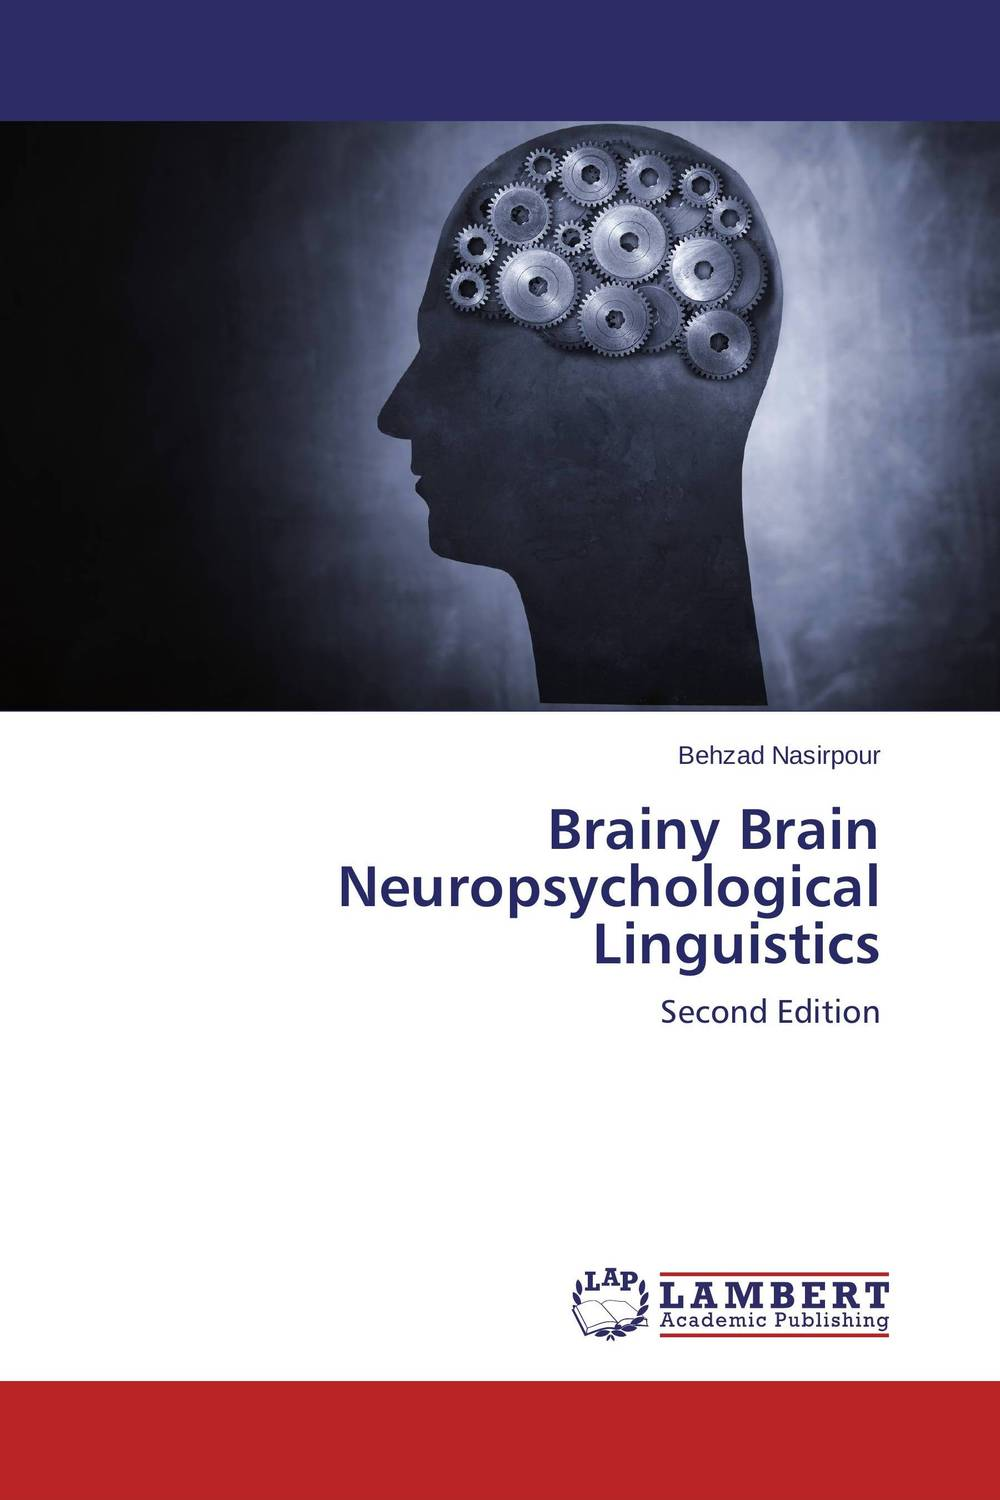 Brainy Brain Neuropsychological Linguistics brainy brain neuropsychological linguistics